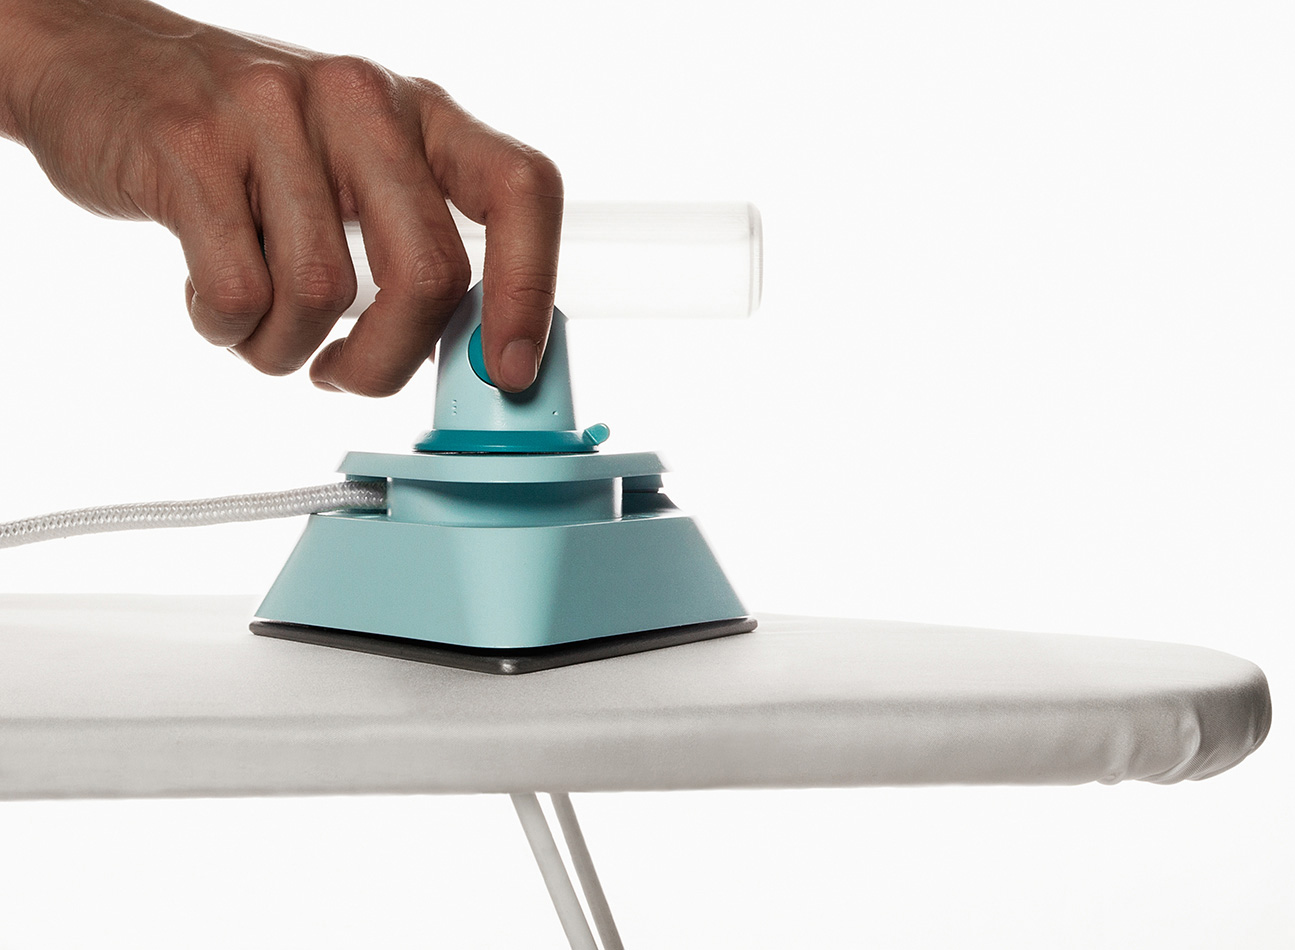 ECAL - Industrial Design by Jonathan Vallin